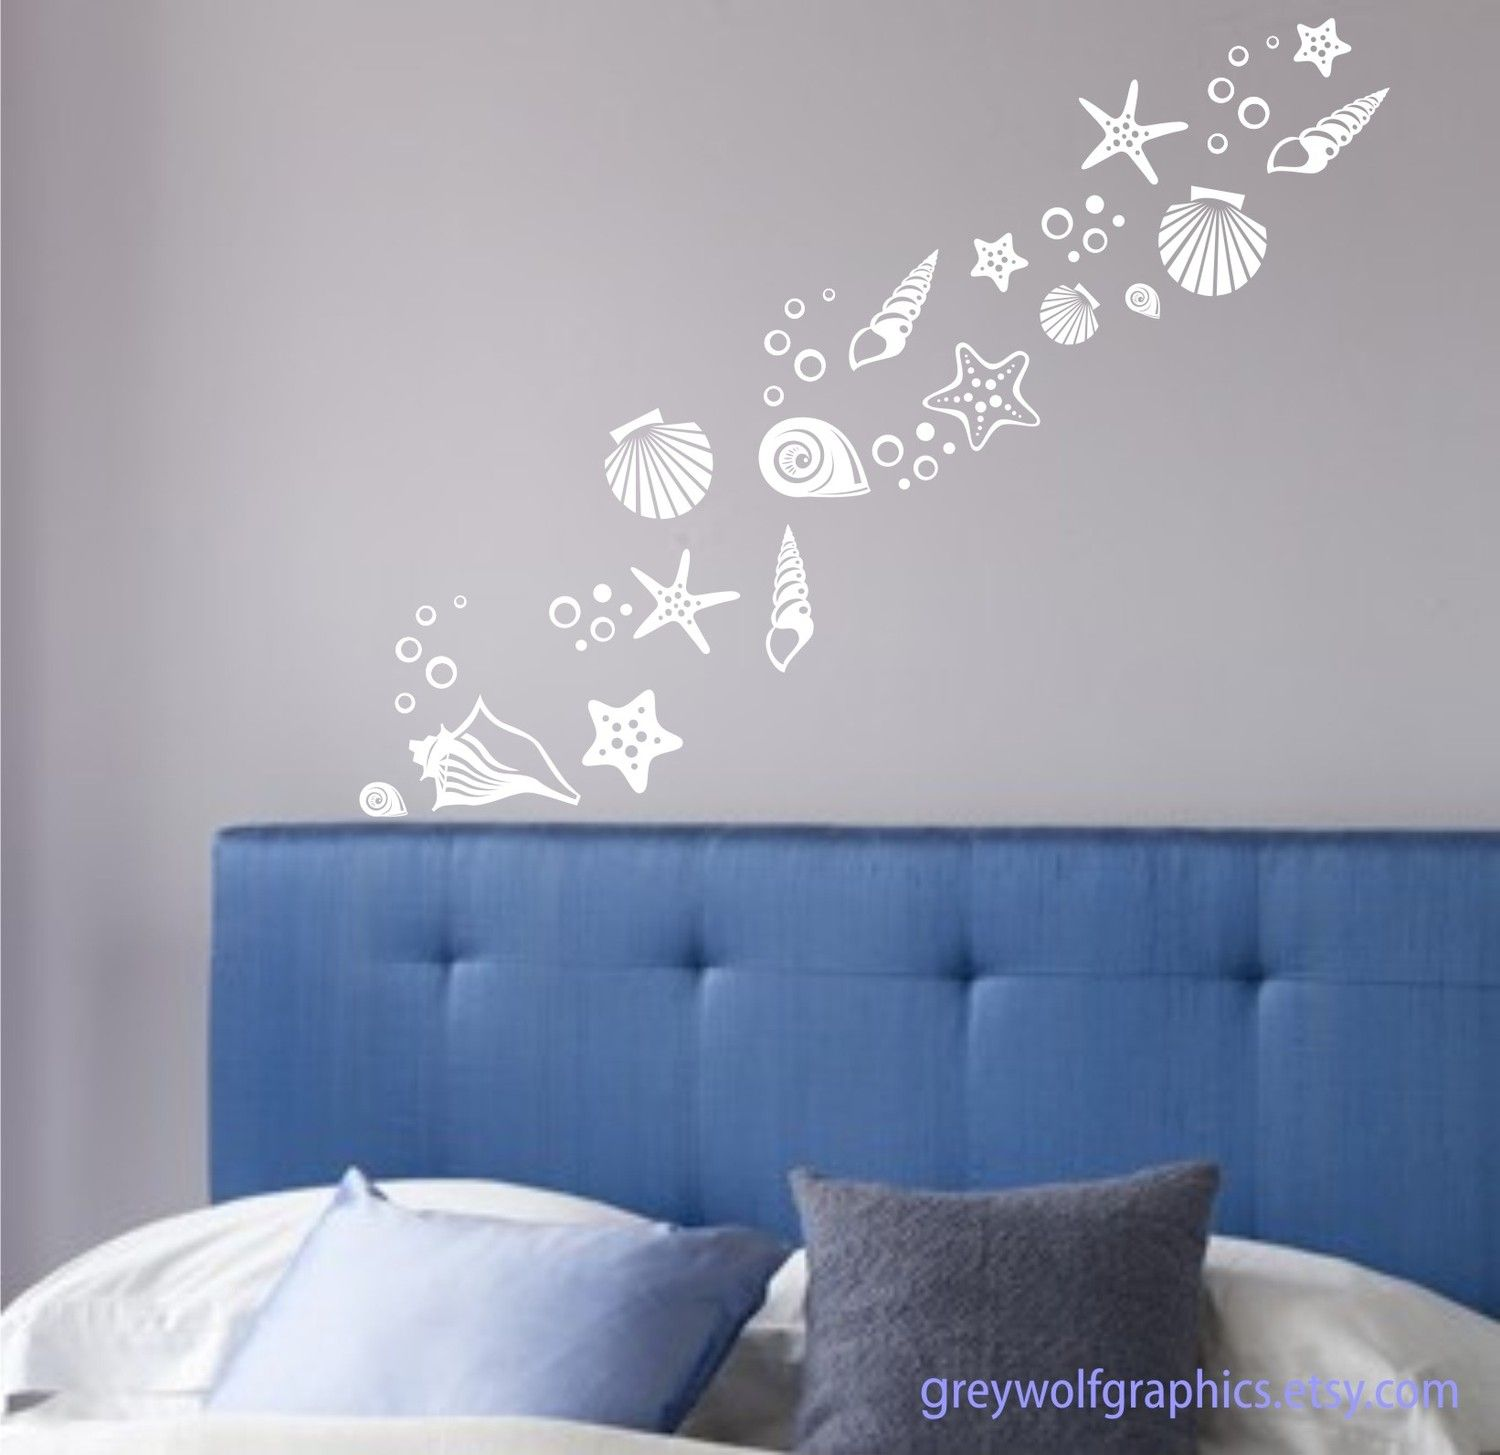 Beach shells wall decals set of over 30 various shell designs beach shells wall decals set of over 30 various shell designs perfect for beach themed room amipublicfo Image collections